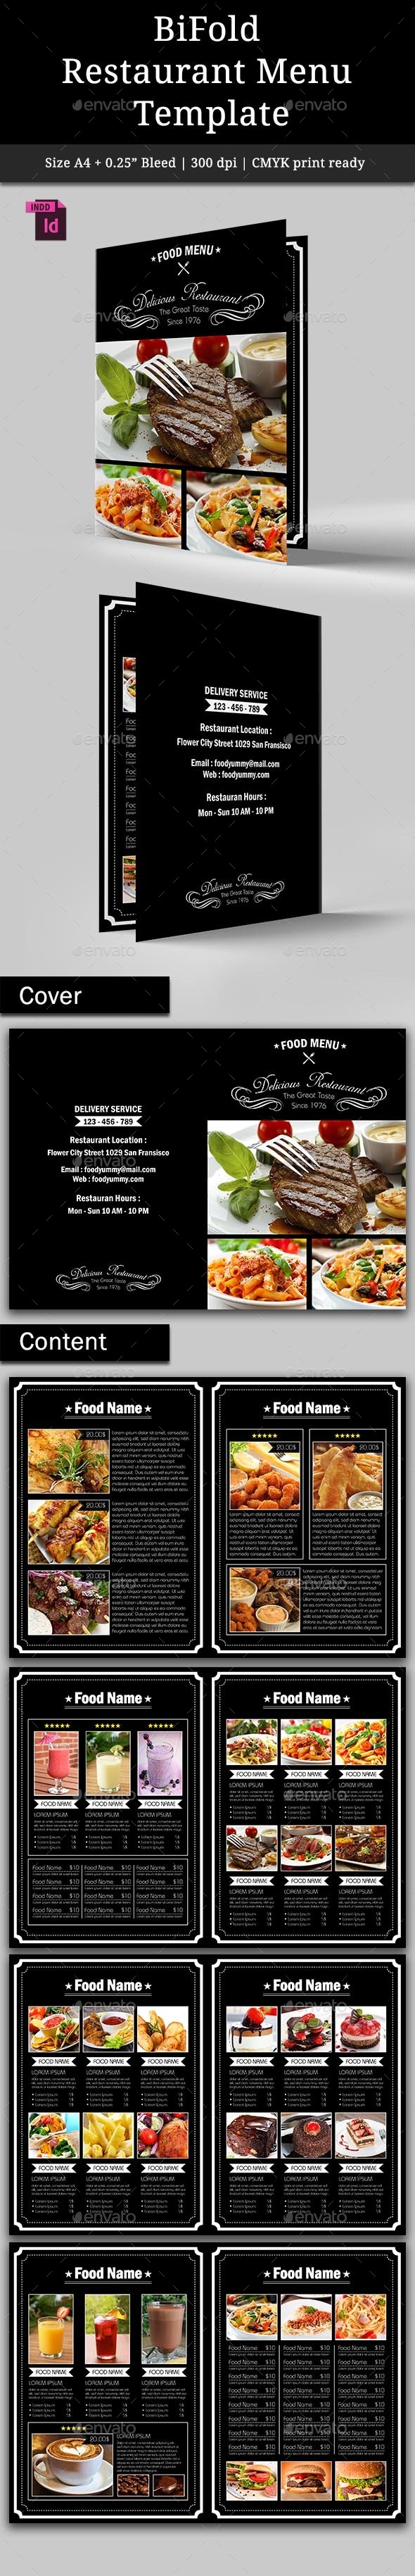 GraphicRiver BiFold Restaurant Menu Vol 2 9309042